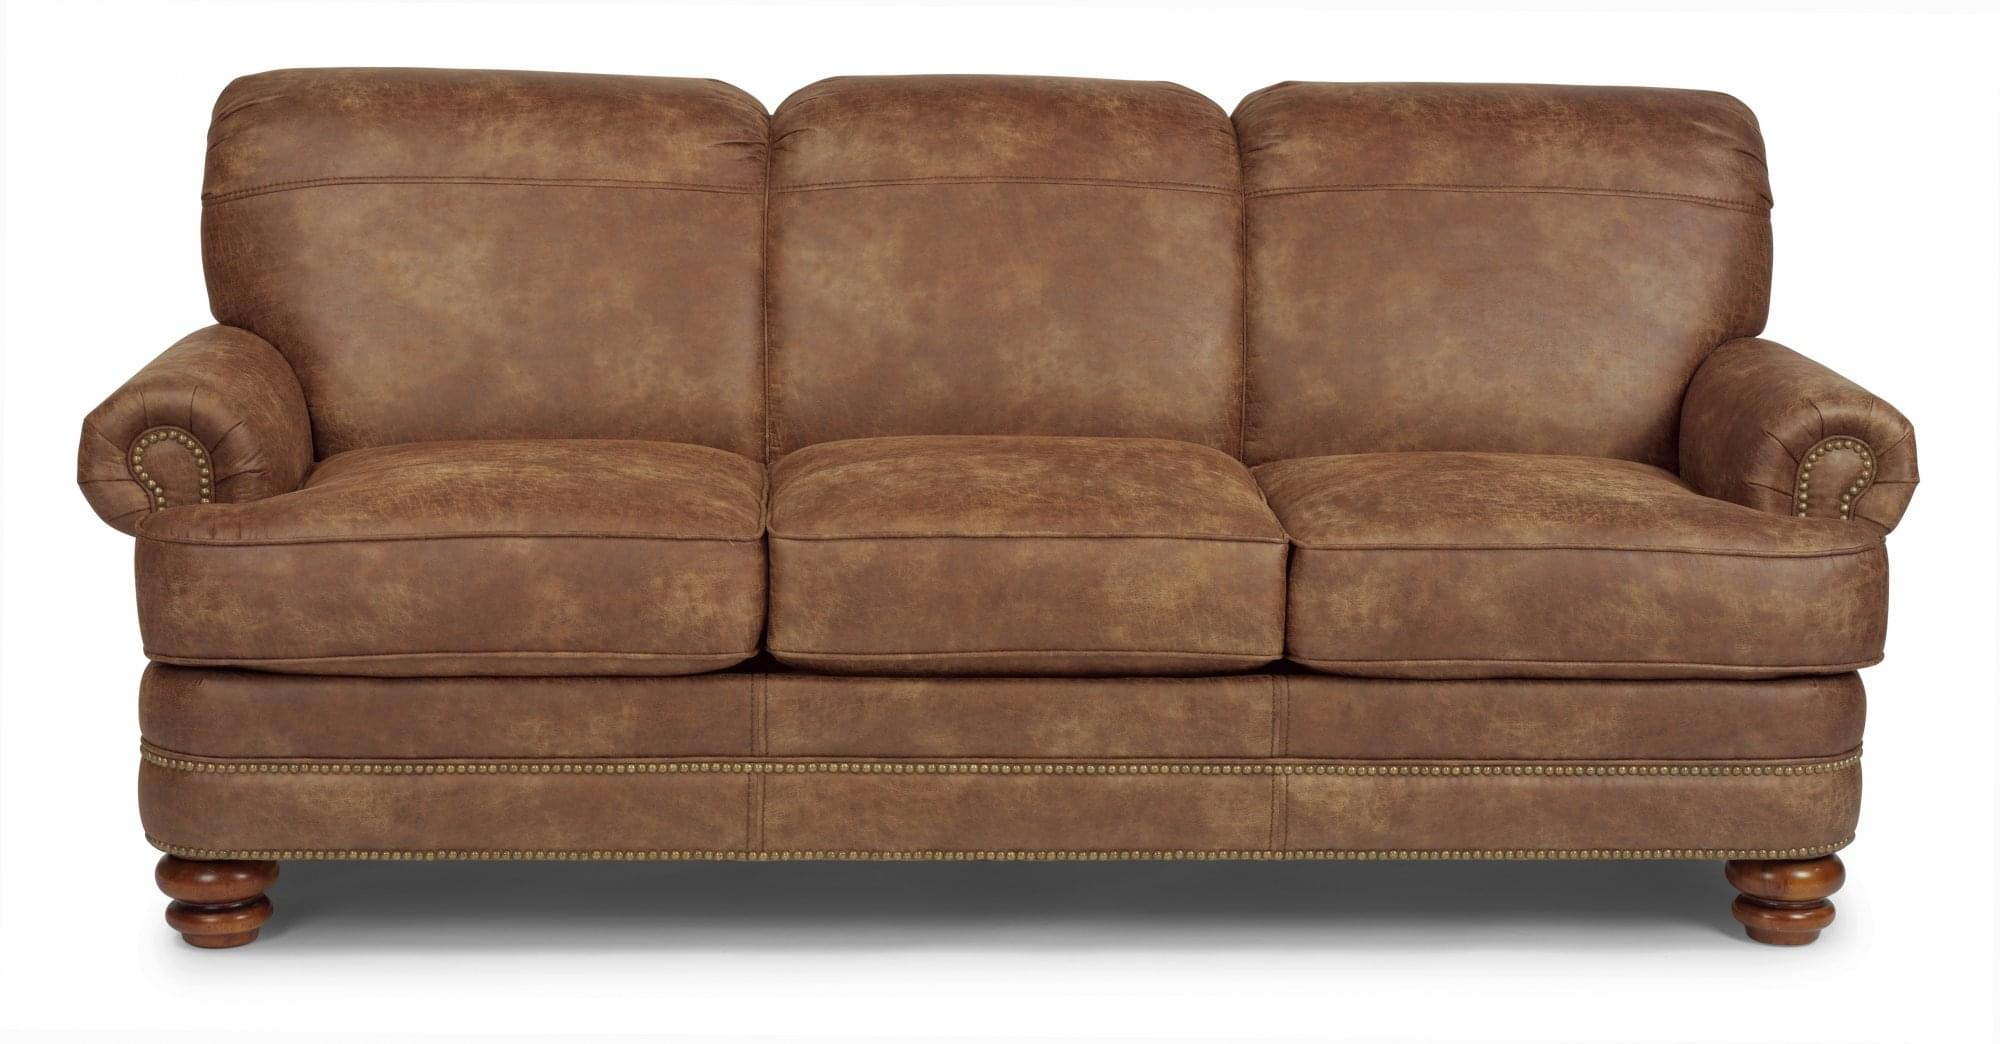 Shop Flexsteel sofas. Sofas for your living room in Monterey county! Stop by Mums Place Furniture Store in Carmel, CA.